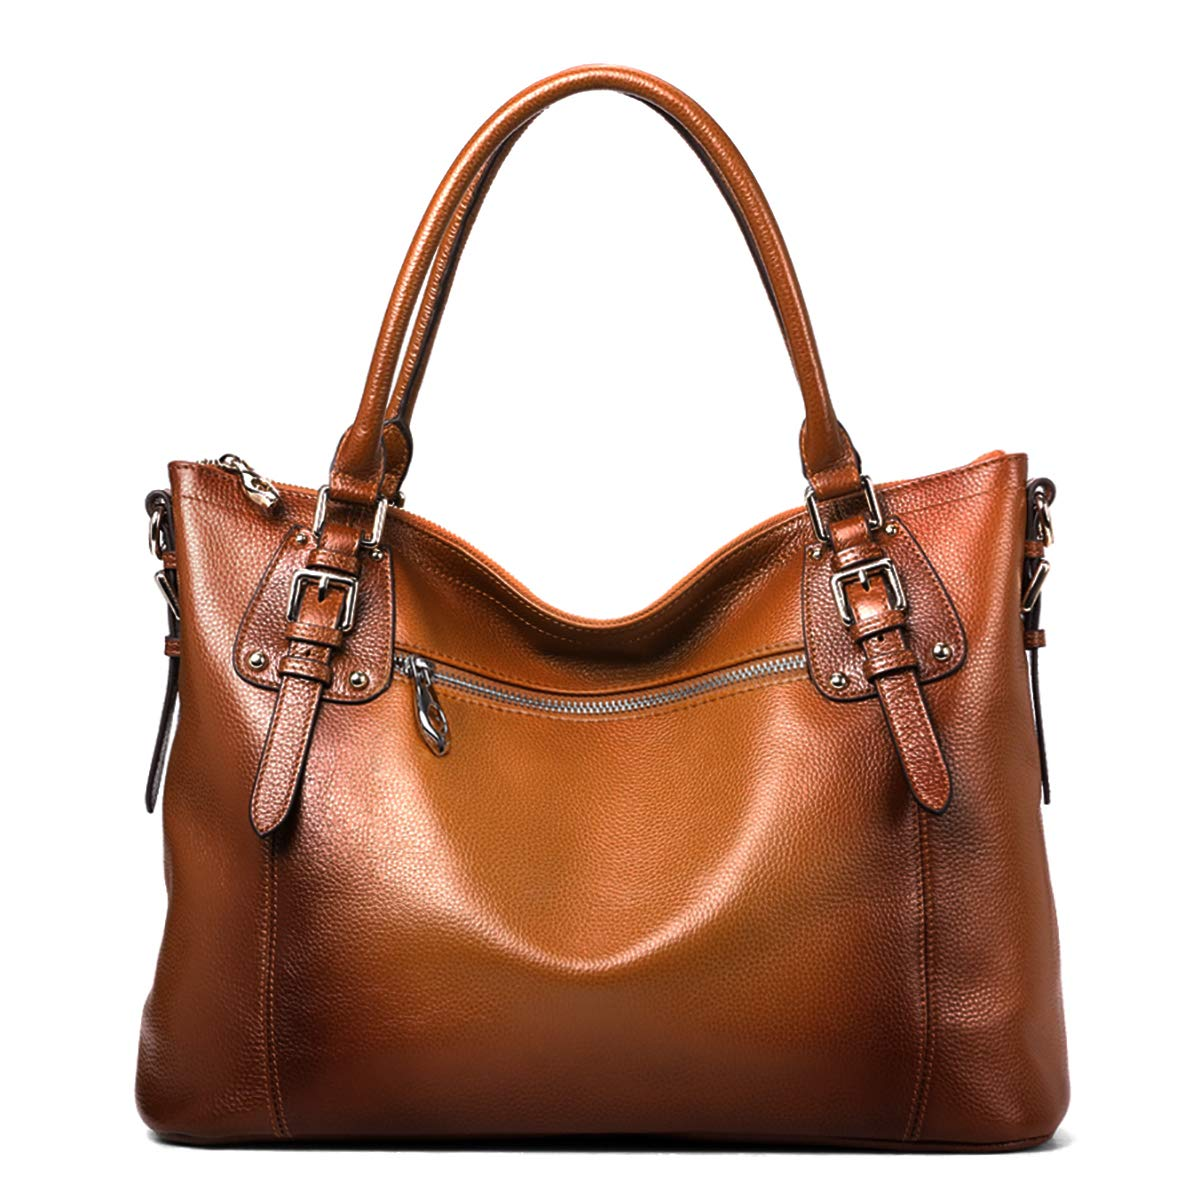 S-ZONE Women's Vintage Genuine Leather Tote Large Shoulder Bag with Outside Pocket (Large, Dark Brown) by S-ZONE (Image #3)